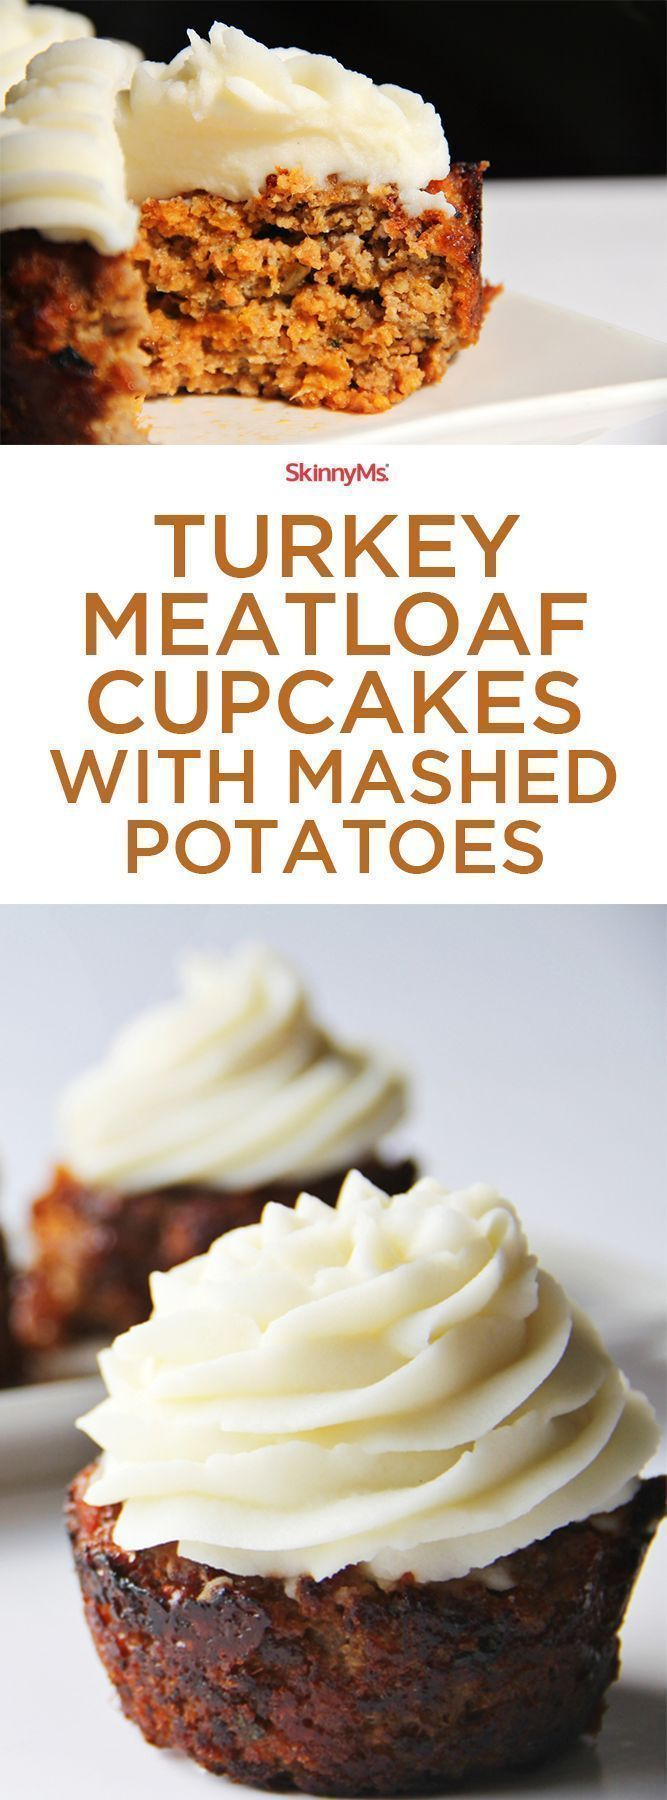 Turkey Meatloaf Cupcakes with Mashed Potatoes | Recipe ...